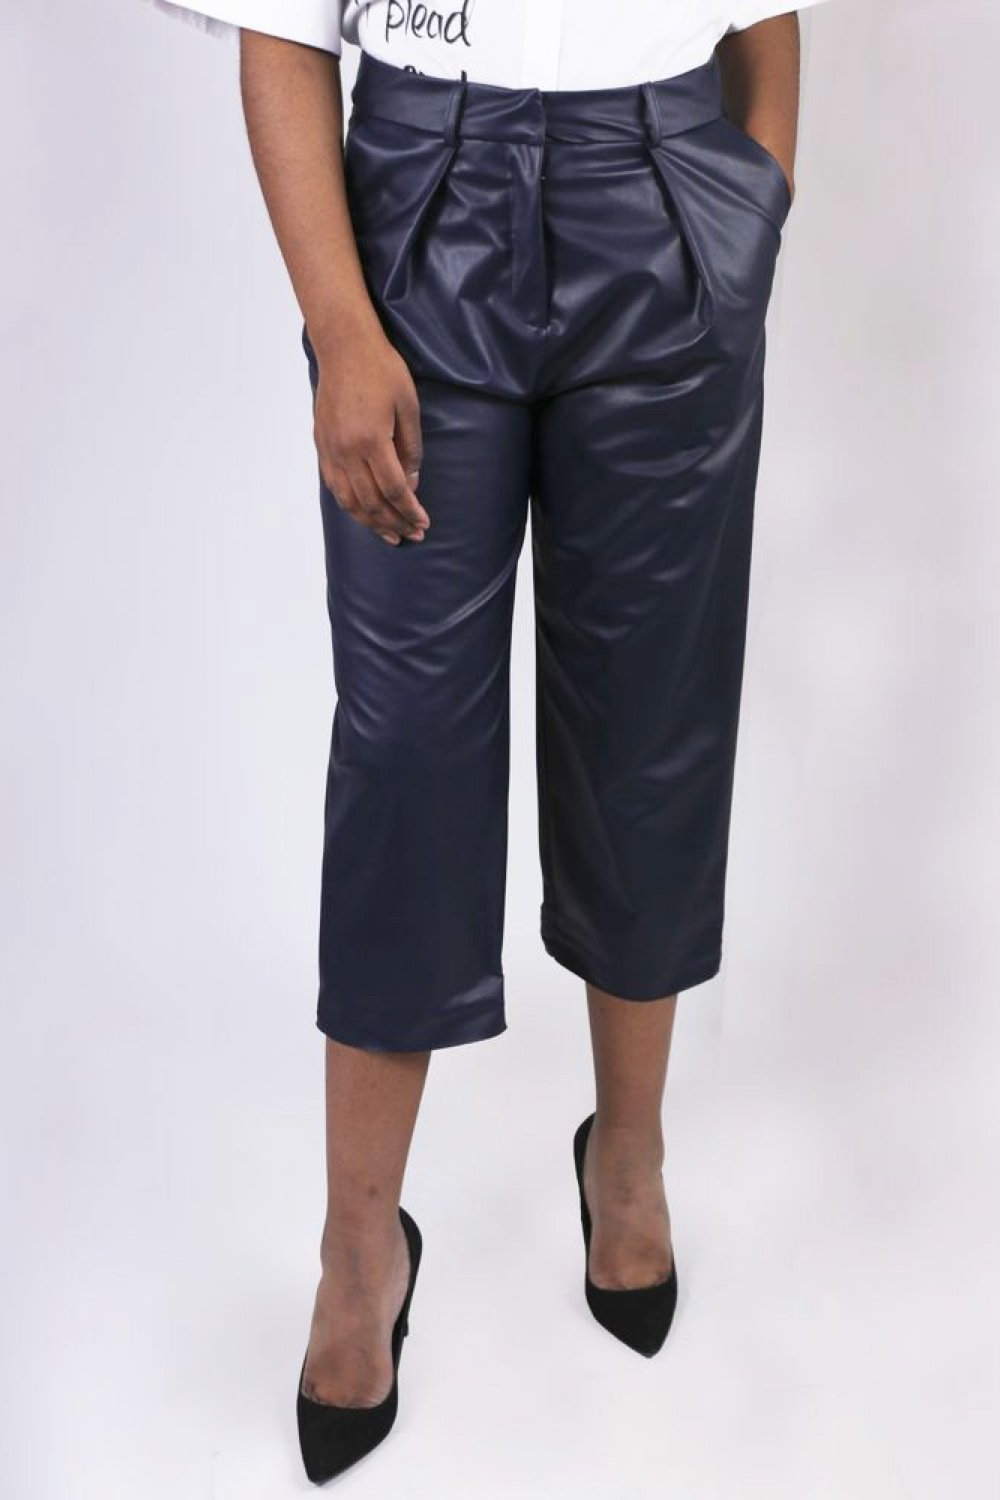 Capri Eco-Leather Pants - The Bobby Boga